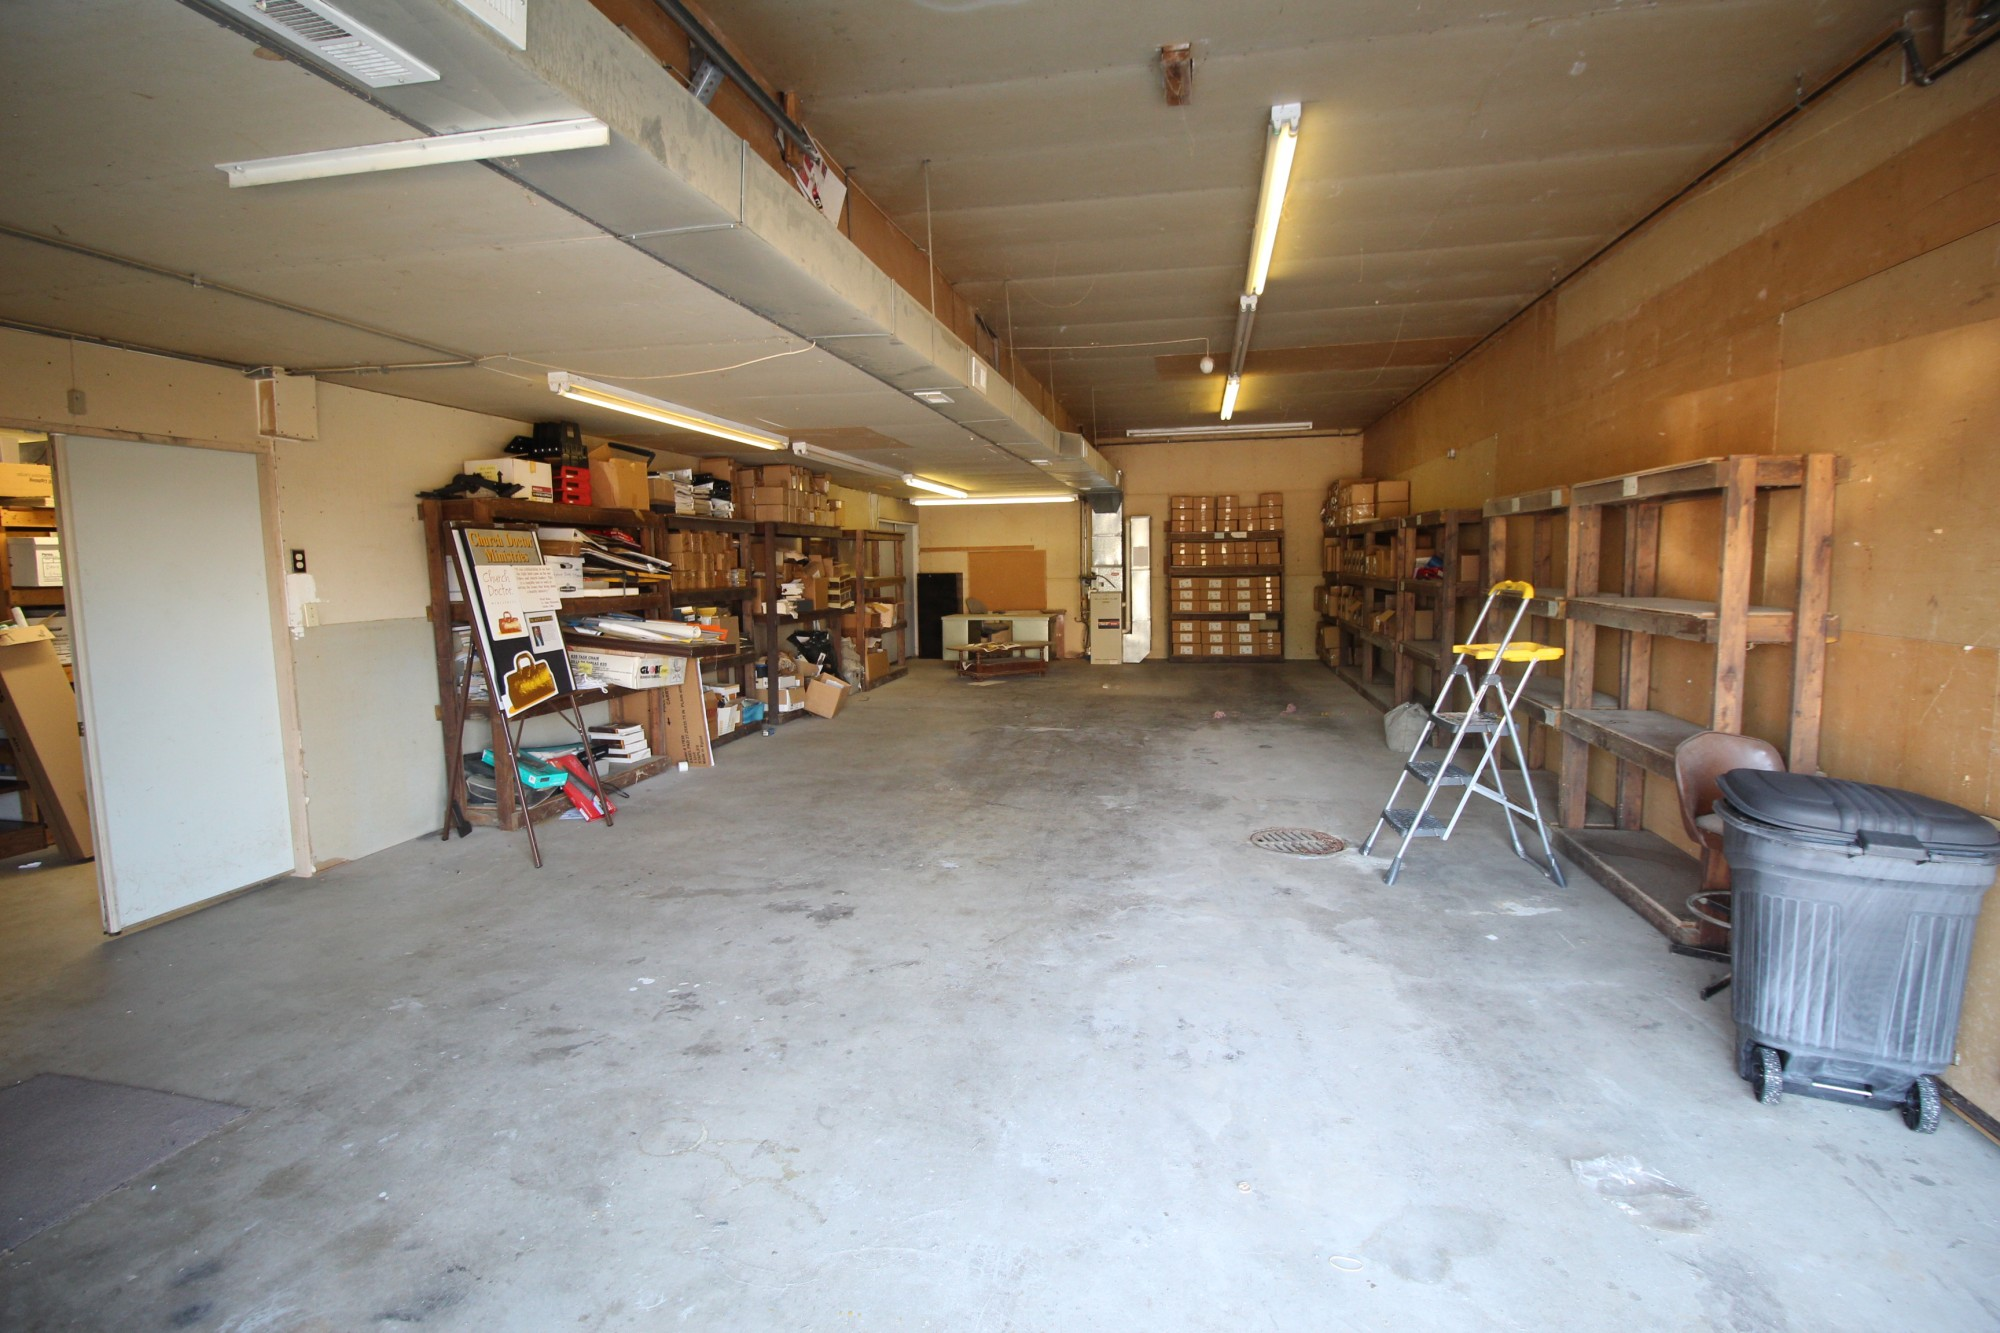 This is the storage area of the building